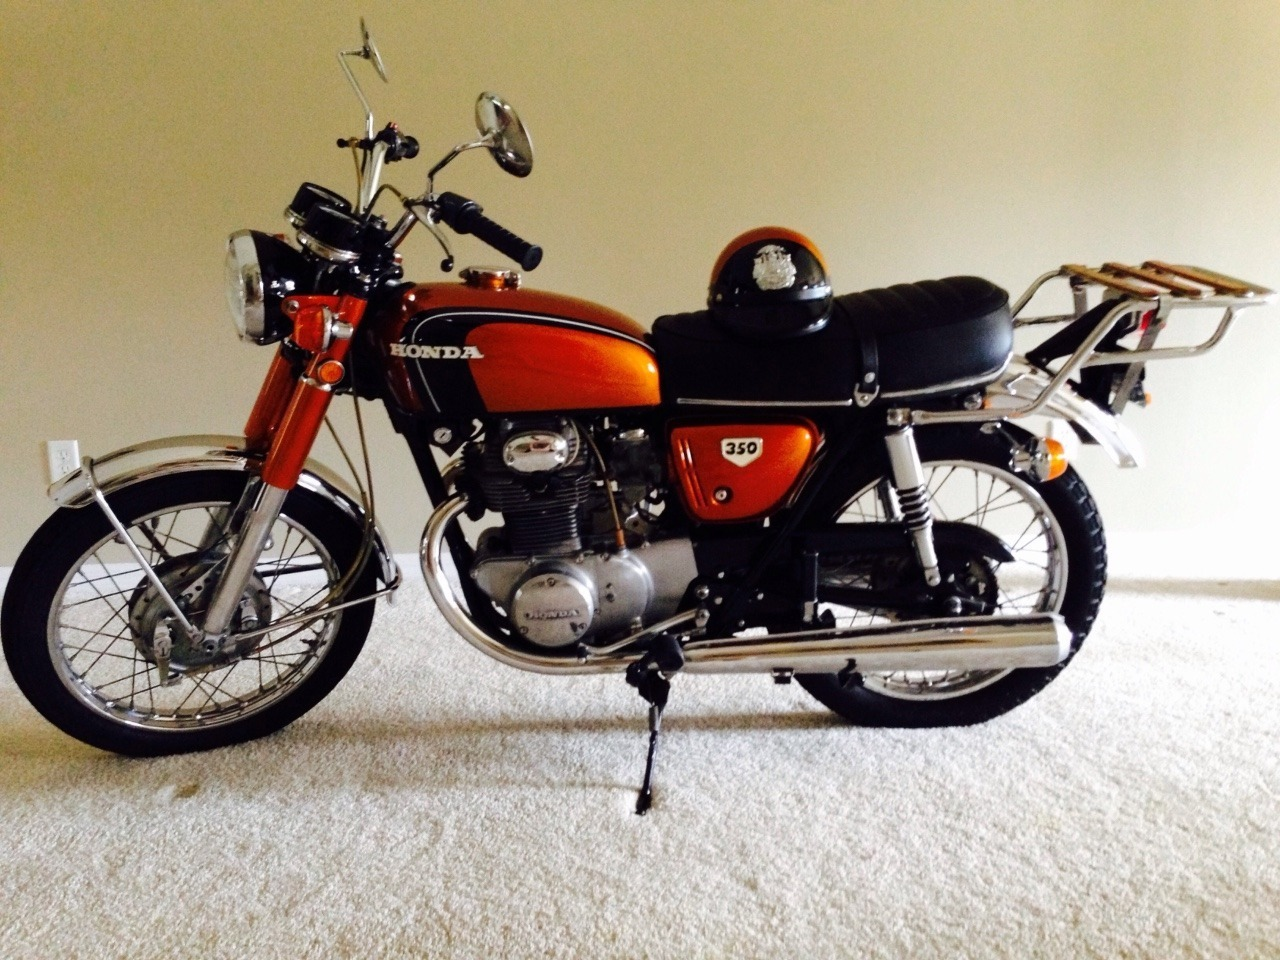 1971 Supply Honda Motorcycles Transaction Price Cb 350, New and Used Motorcycles Prices and Values